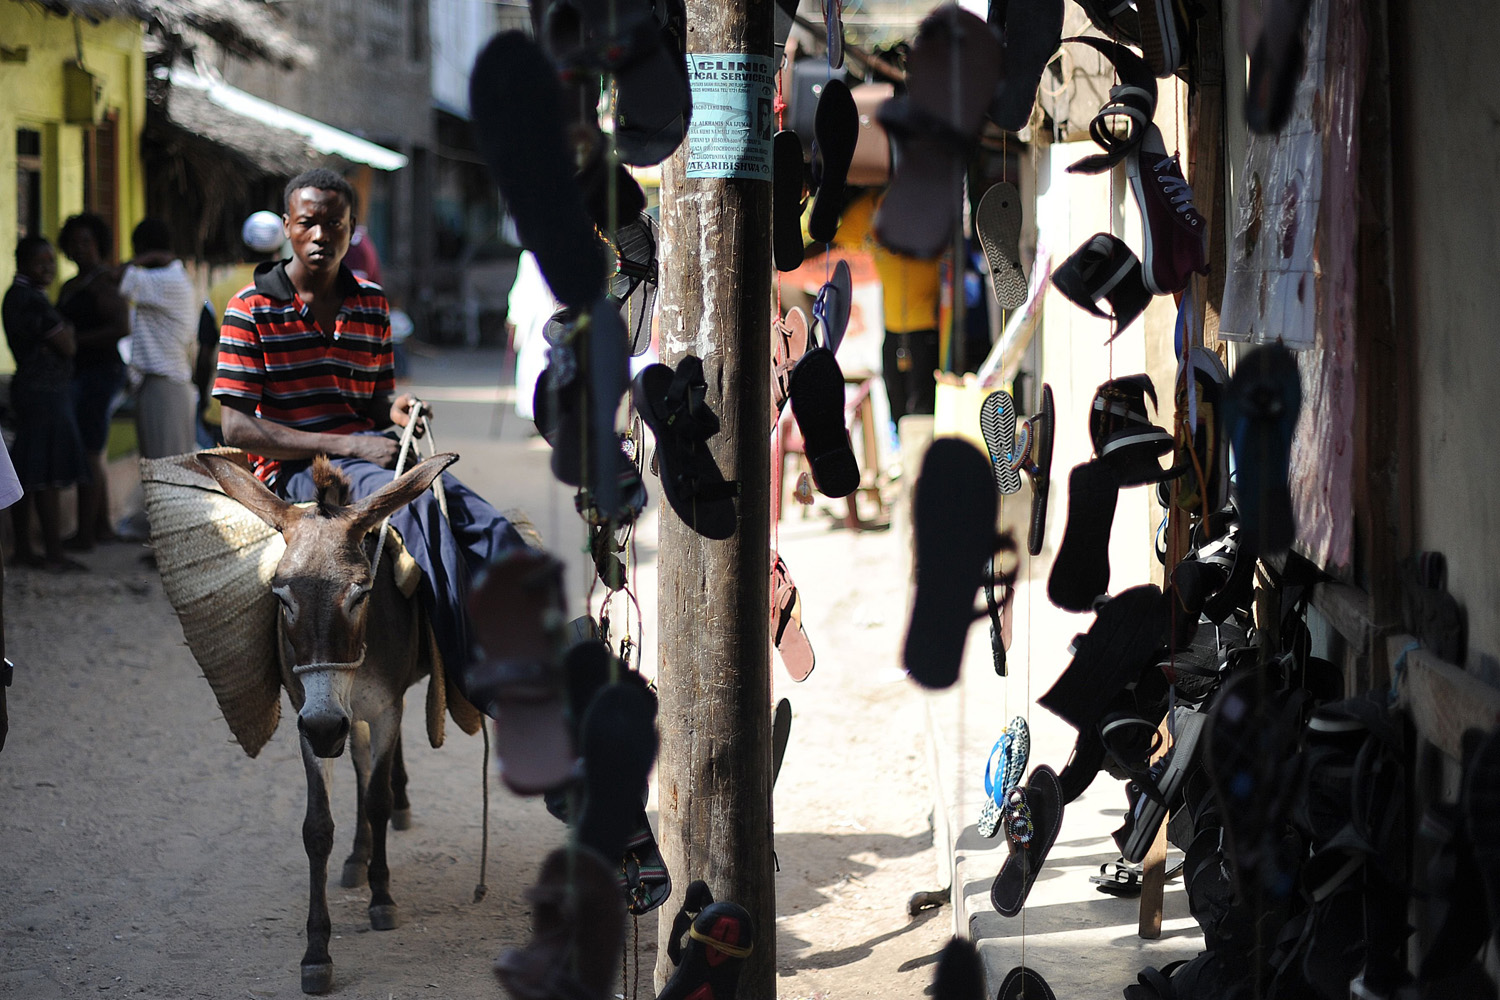 Jun. 18, 2014. A resident of the town of Lamu rides a donkey a few days after some 50 heavily-armed gunmen attacked the town near the coastal island and popular tourist resort of Lamu.